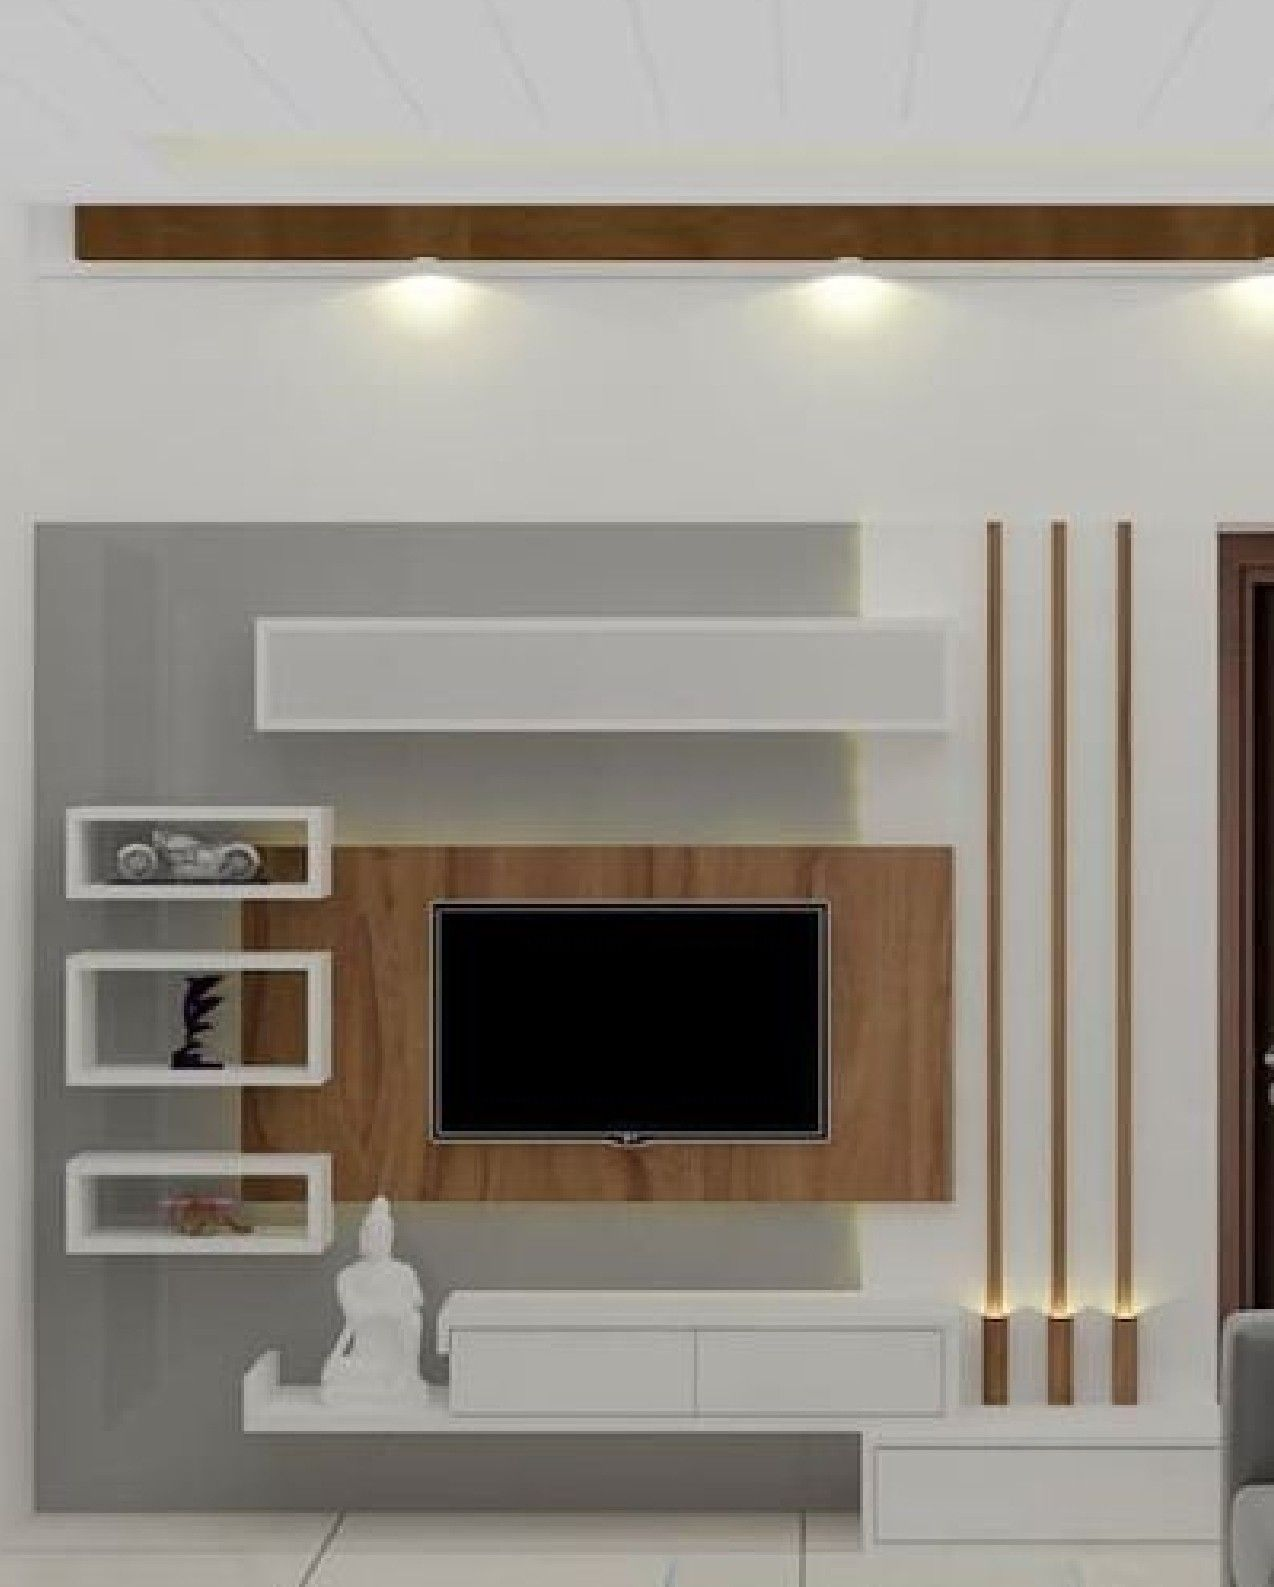 Pin By Juana Schultz On Wall Units In 2020 Living Room Tv Unit Designs Wall Tv Unit Design Tv Unit Interior Design